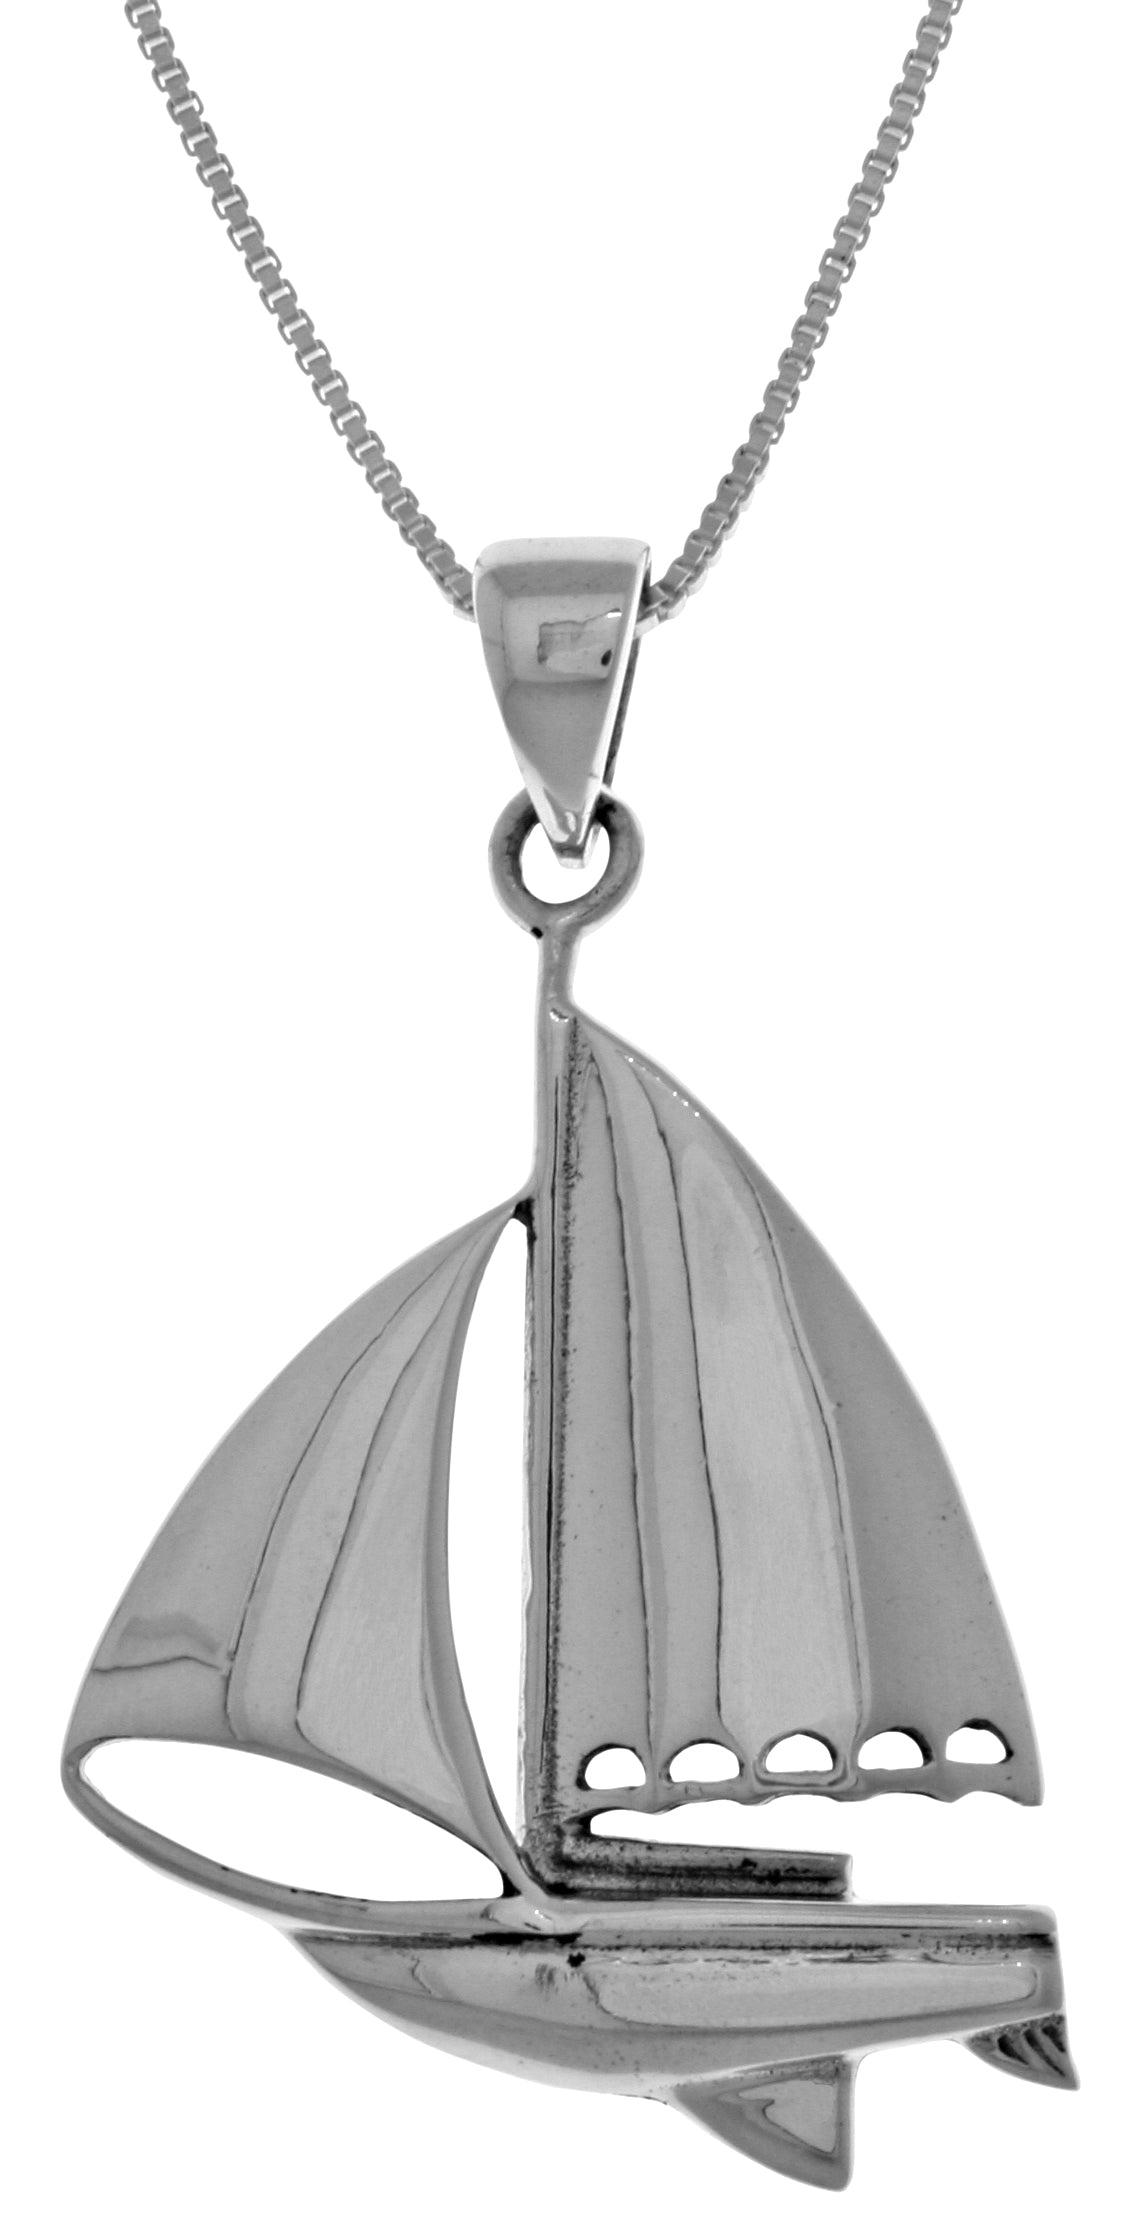 Jewelry Trends Sterling Silver Nautical Sailboat Pendant on 18 Inch Box Chain Necklace